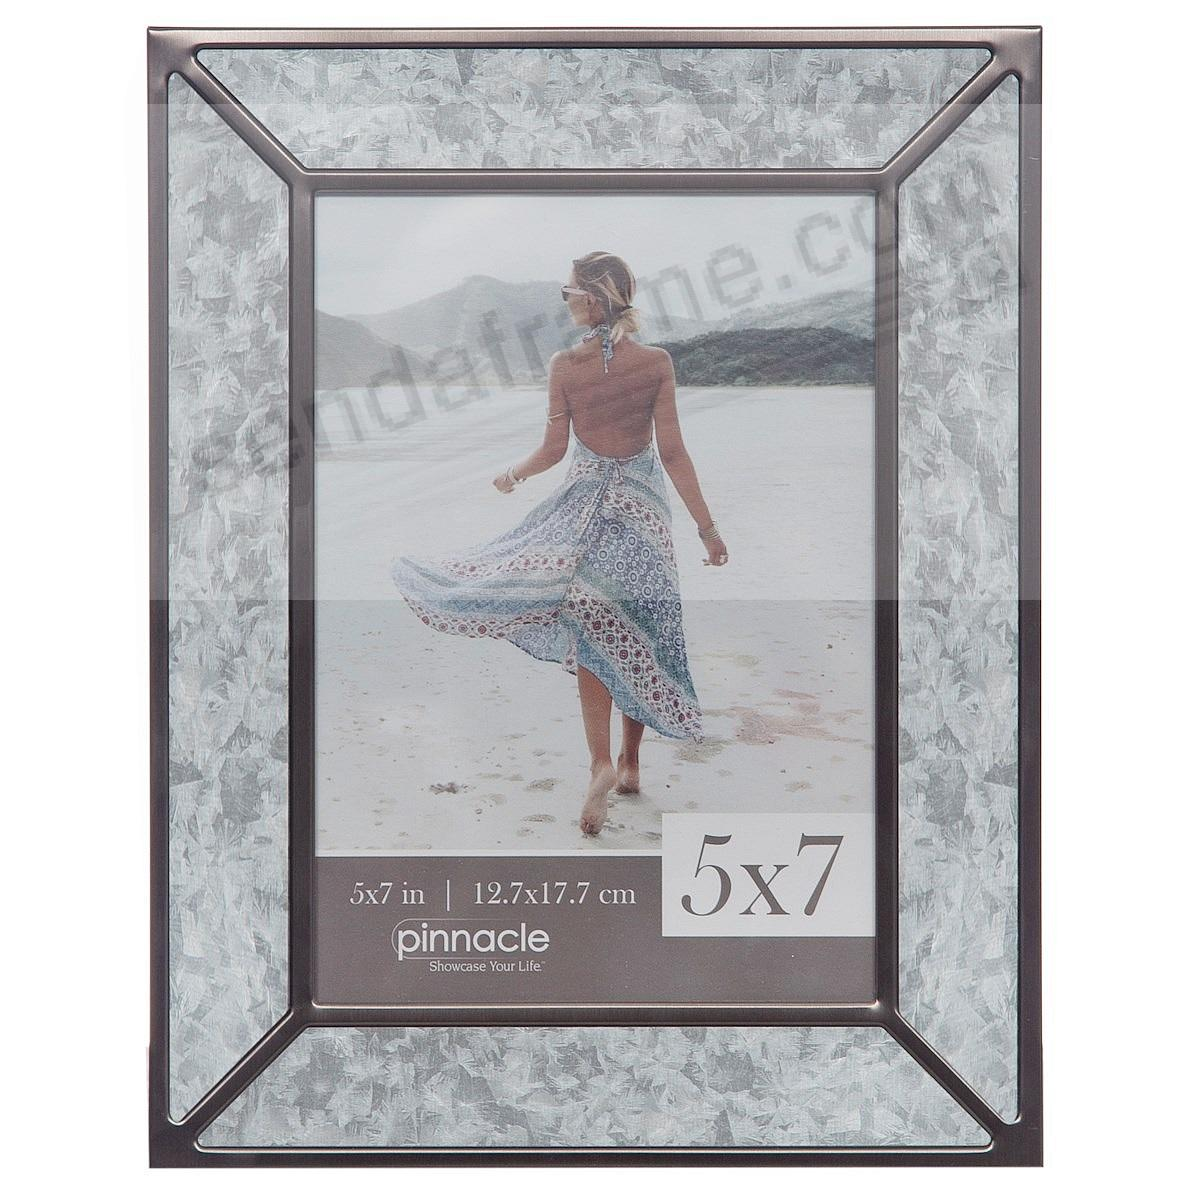 Galvanized metal inlay 5x7 frame by Pinnacle™